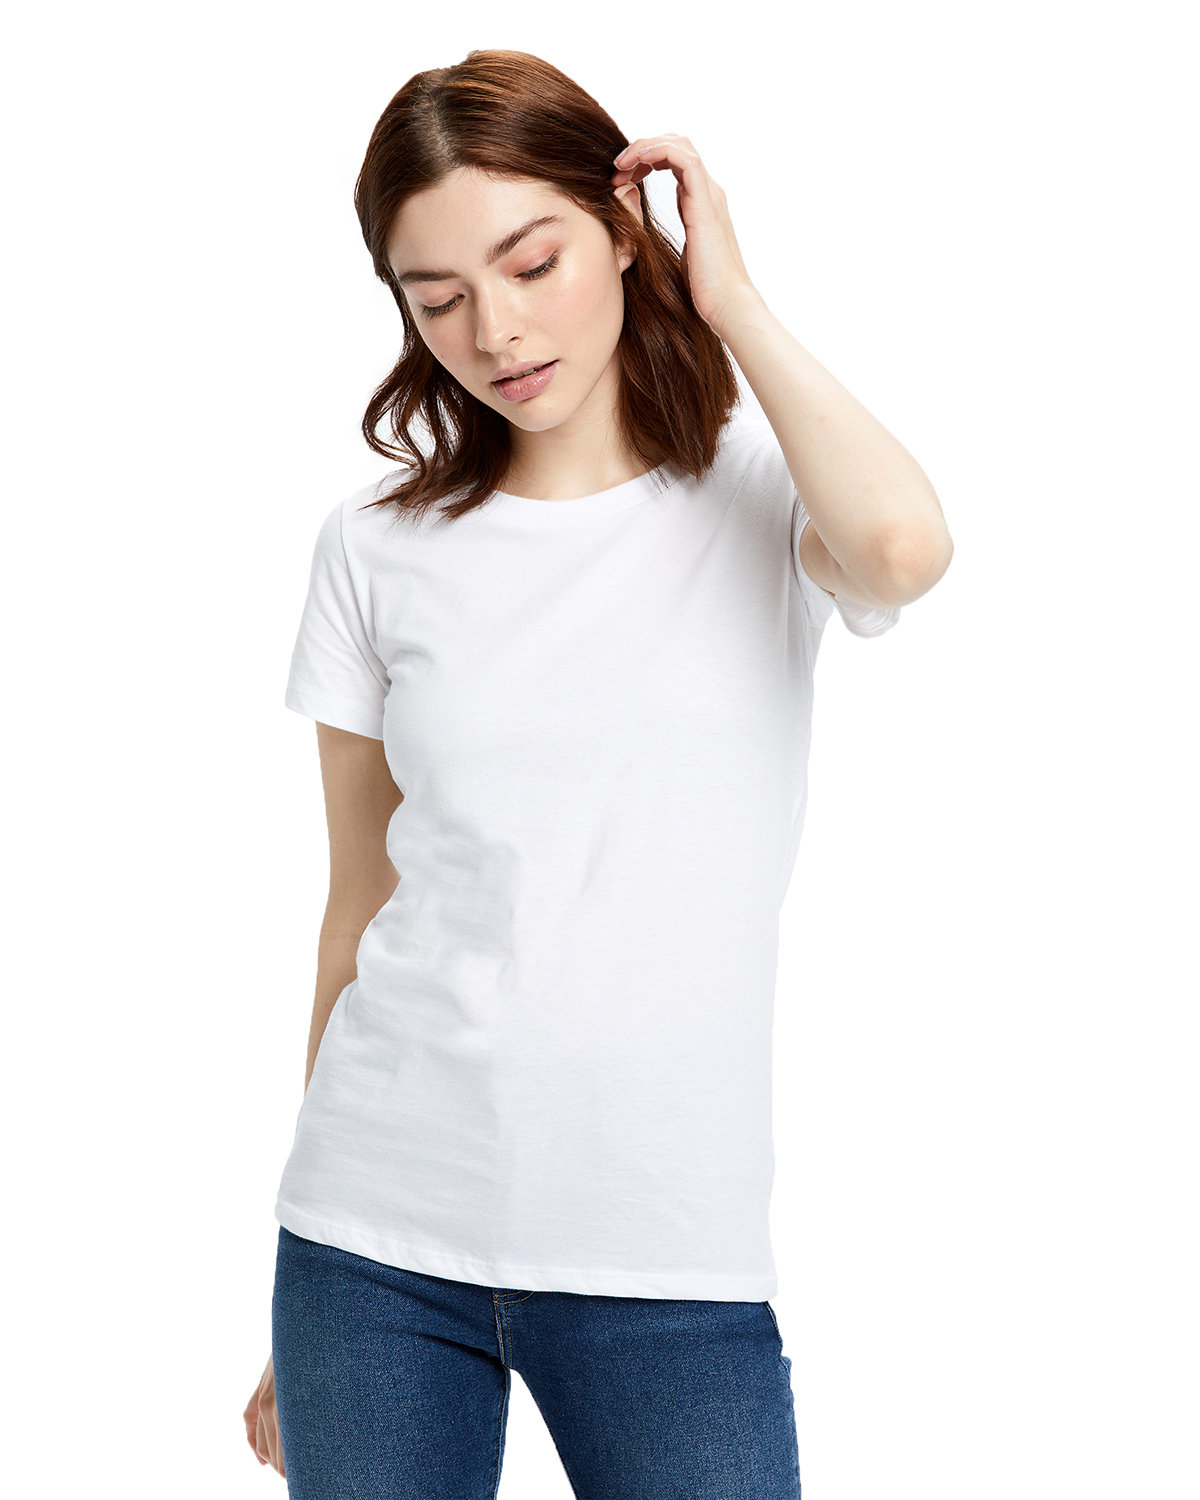 US Blanks Ladies' Made in USA Short Sleeve Crew T-Shirt WHITE